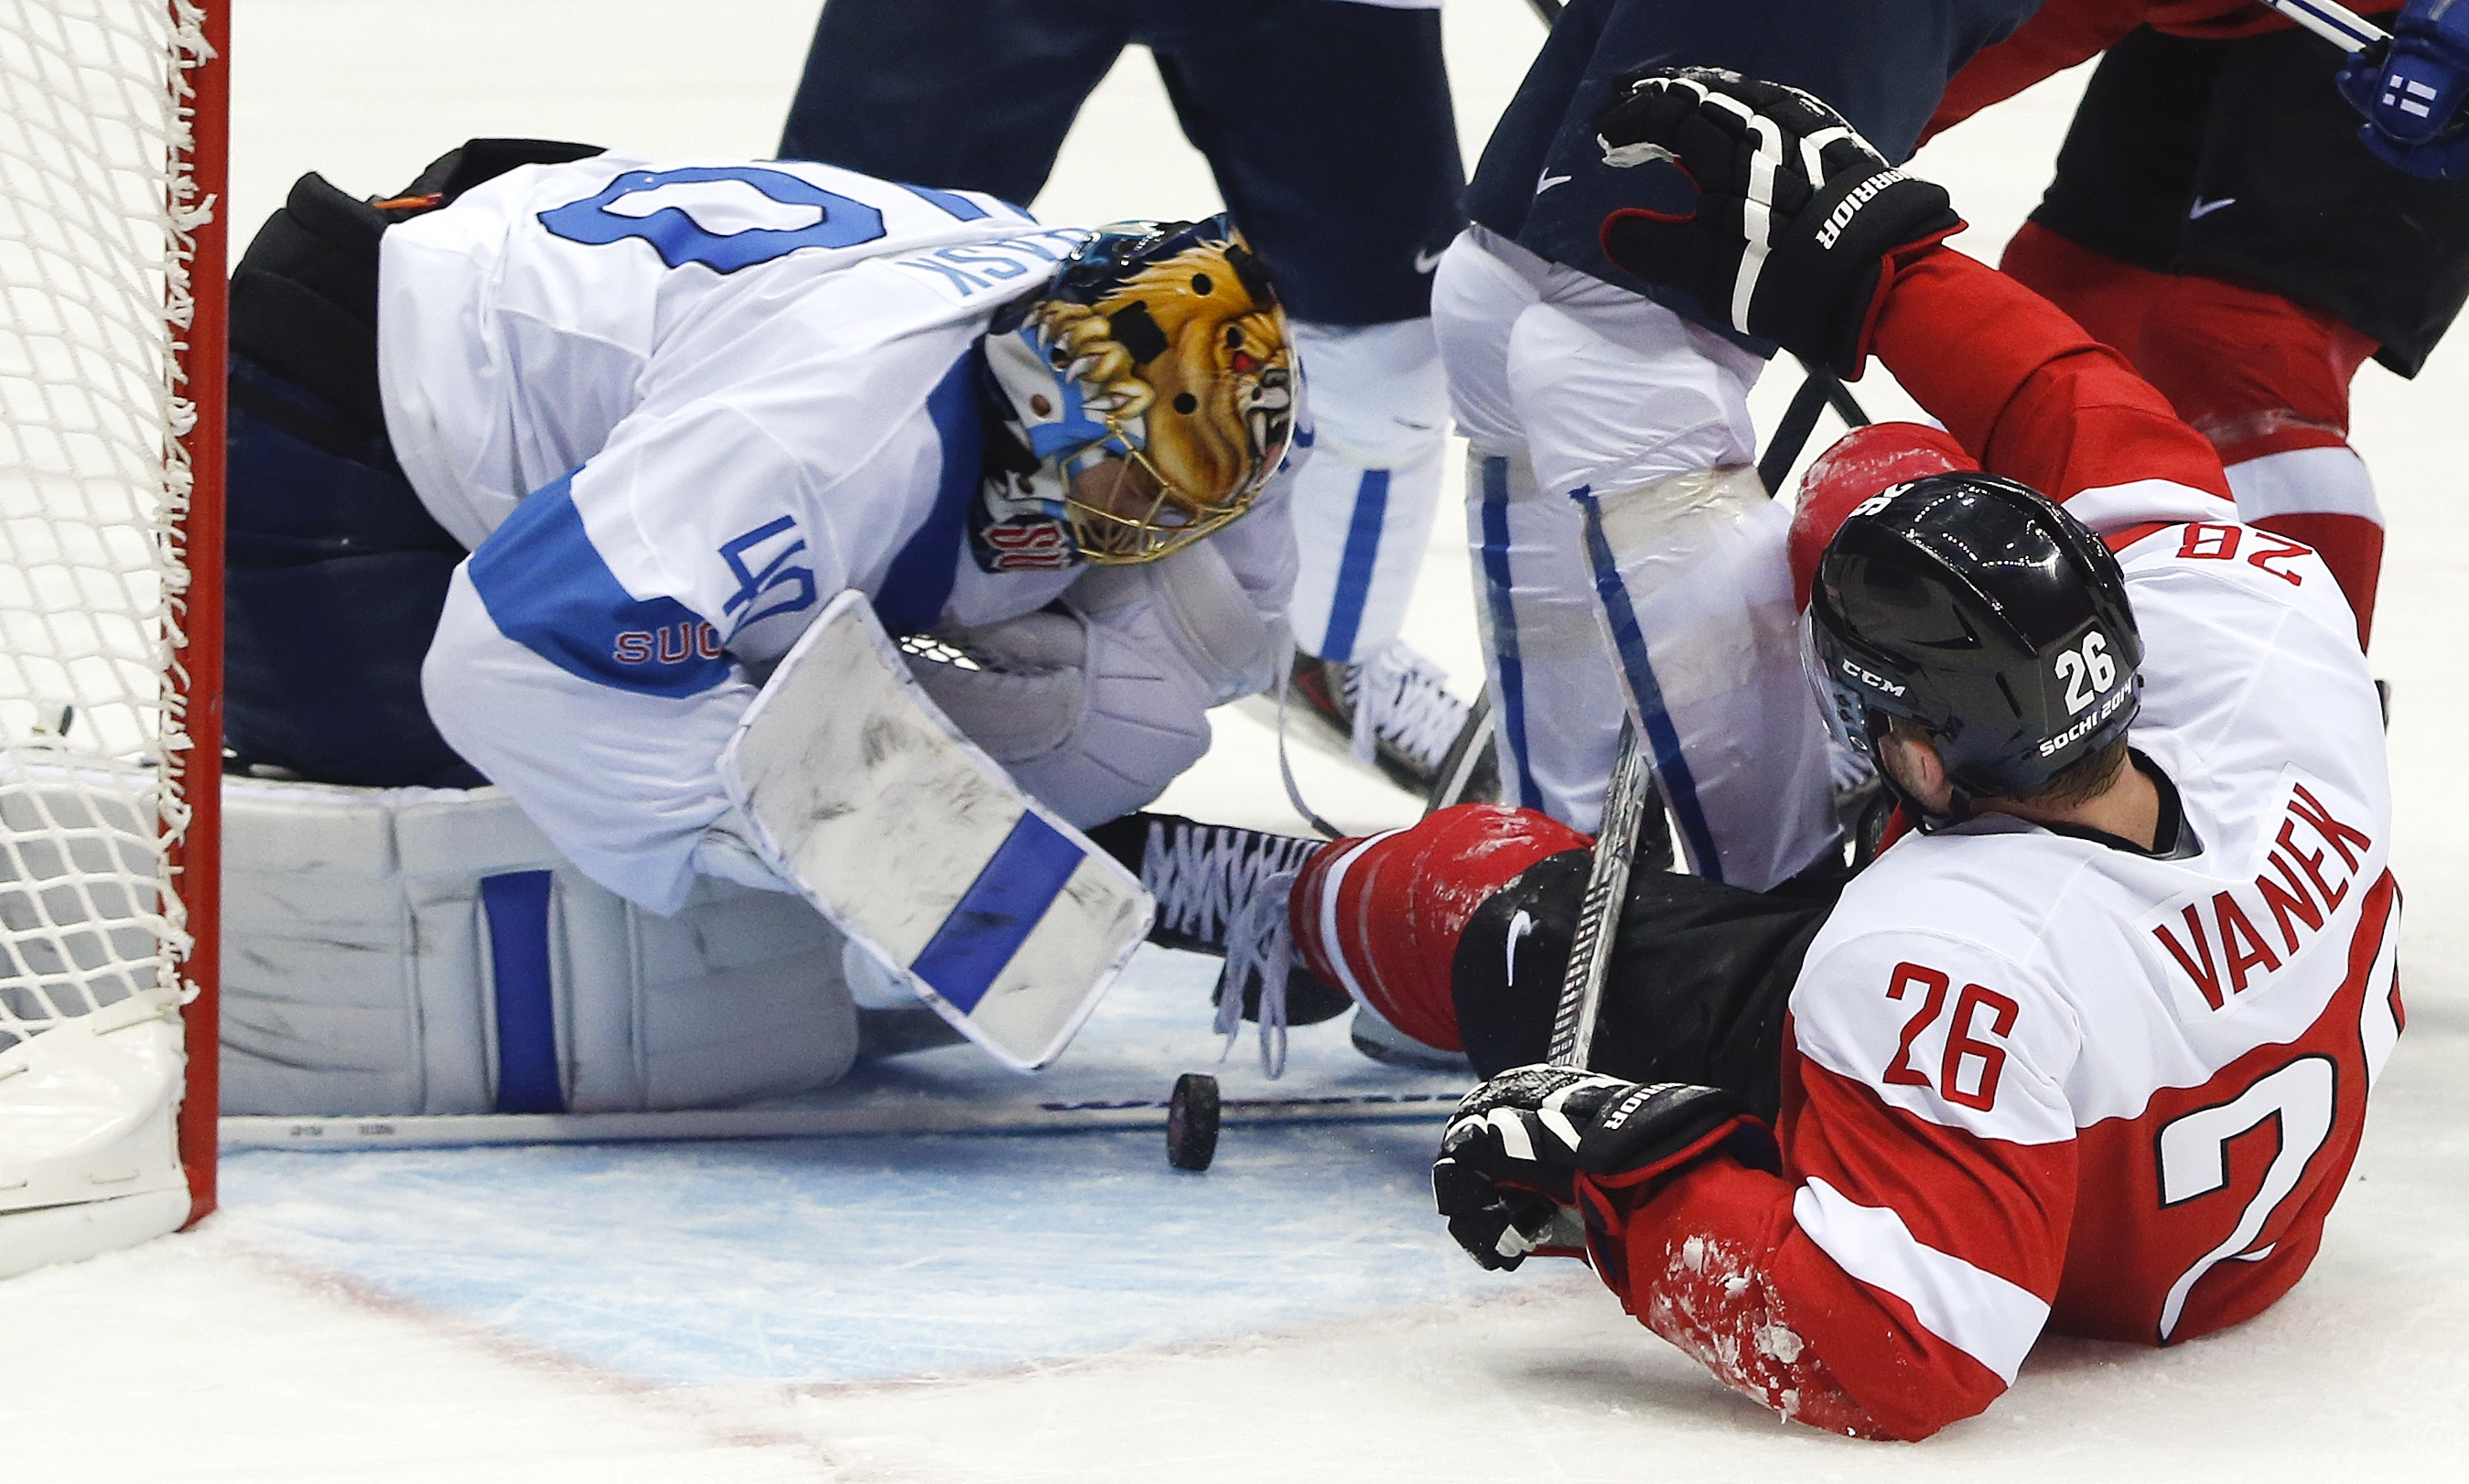 Austria forward and former Buffalo Sabres captain Thomas Vanek falls to the ice as Finland goaltender Tuukka Rask reaches to smother a rebound in the first period of a men's ice hockey game at the 2014 Winter Olympics. (AP Photo/Julio Cortez)